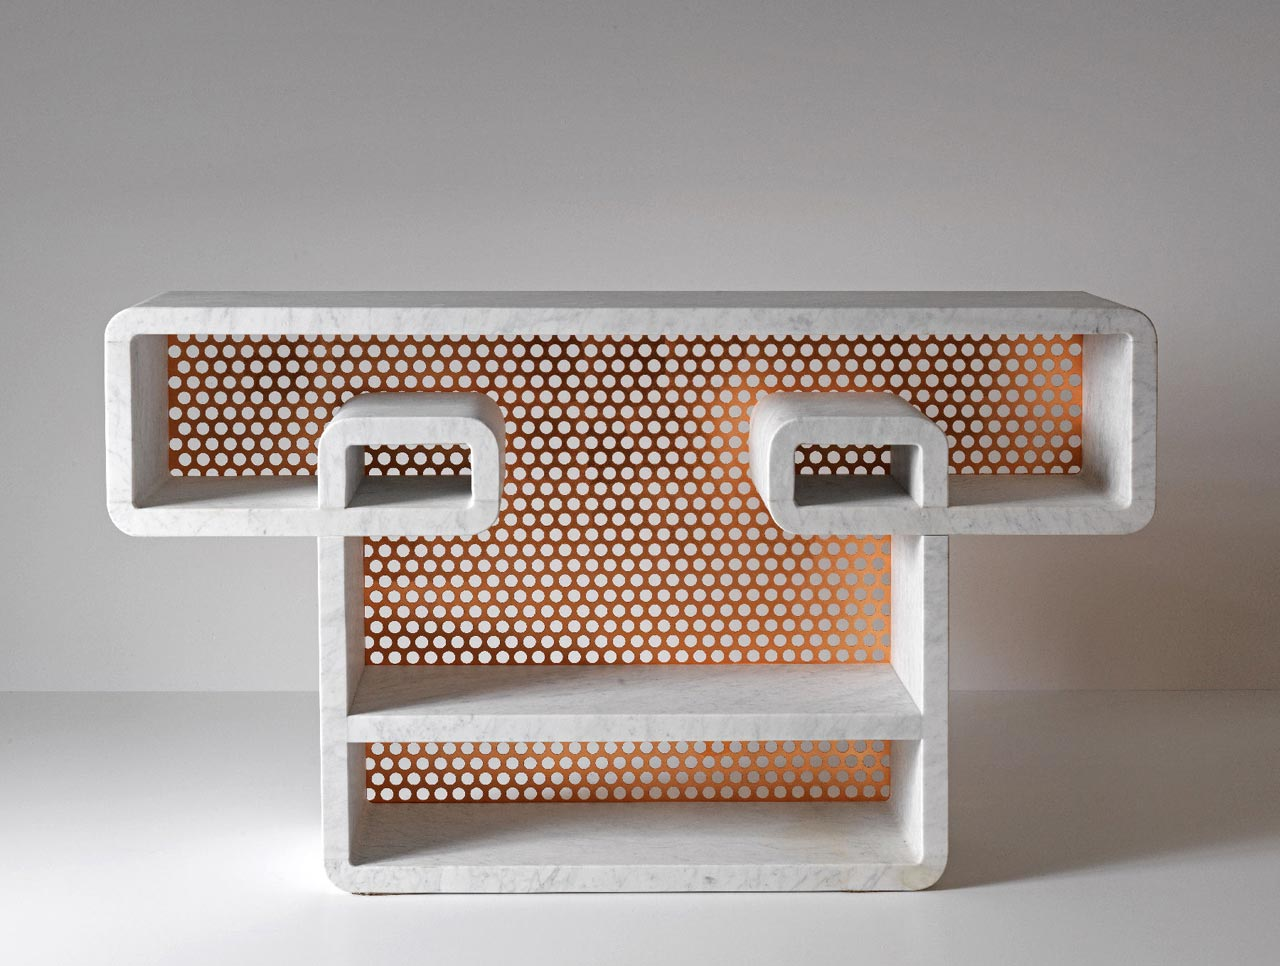 Marble and Metal Shelves Inspired by Doodling